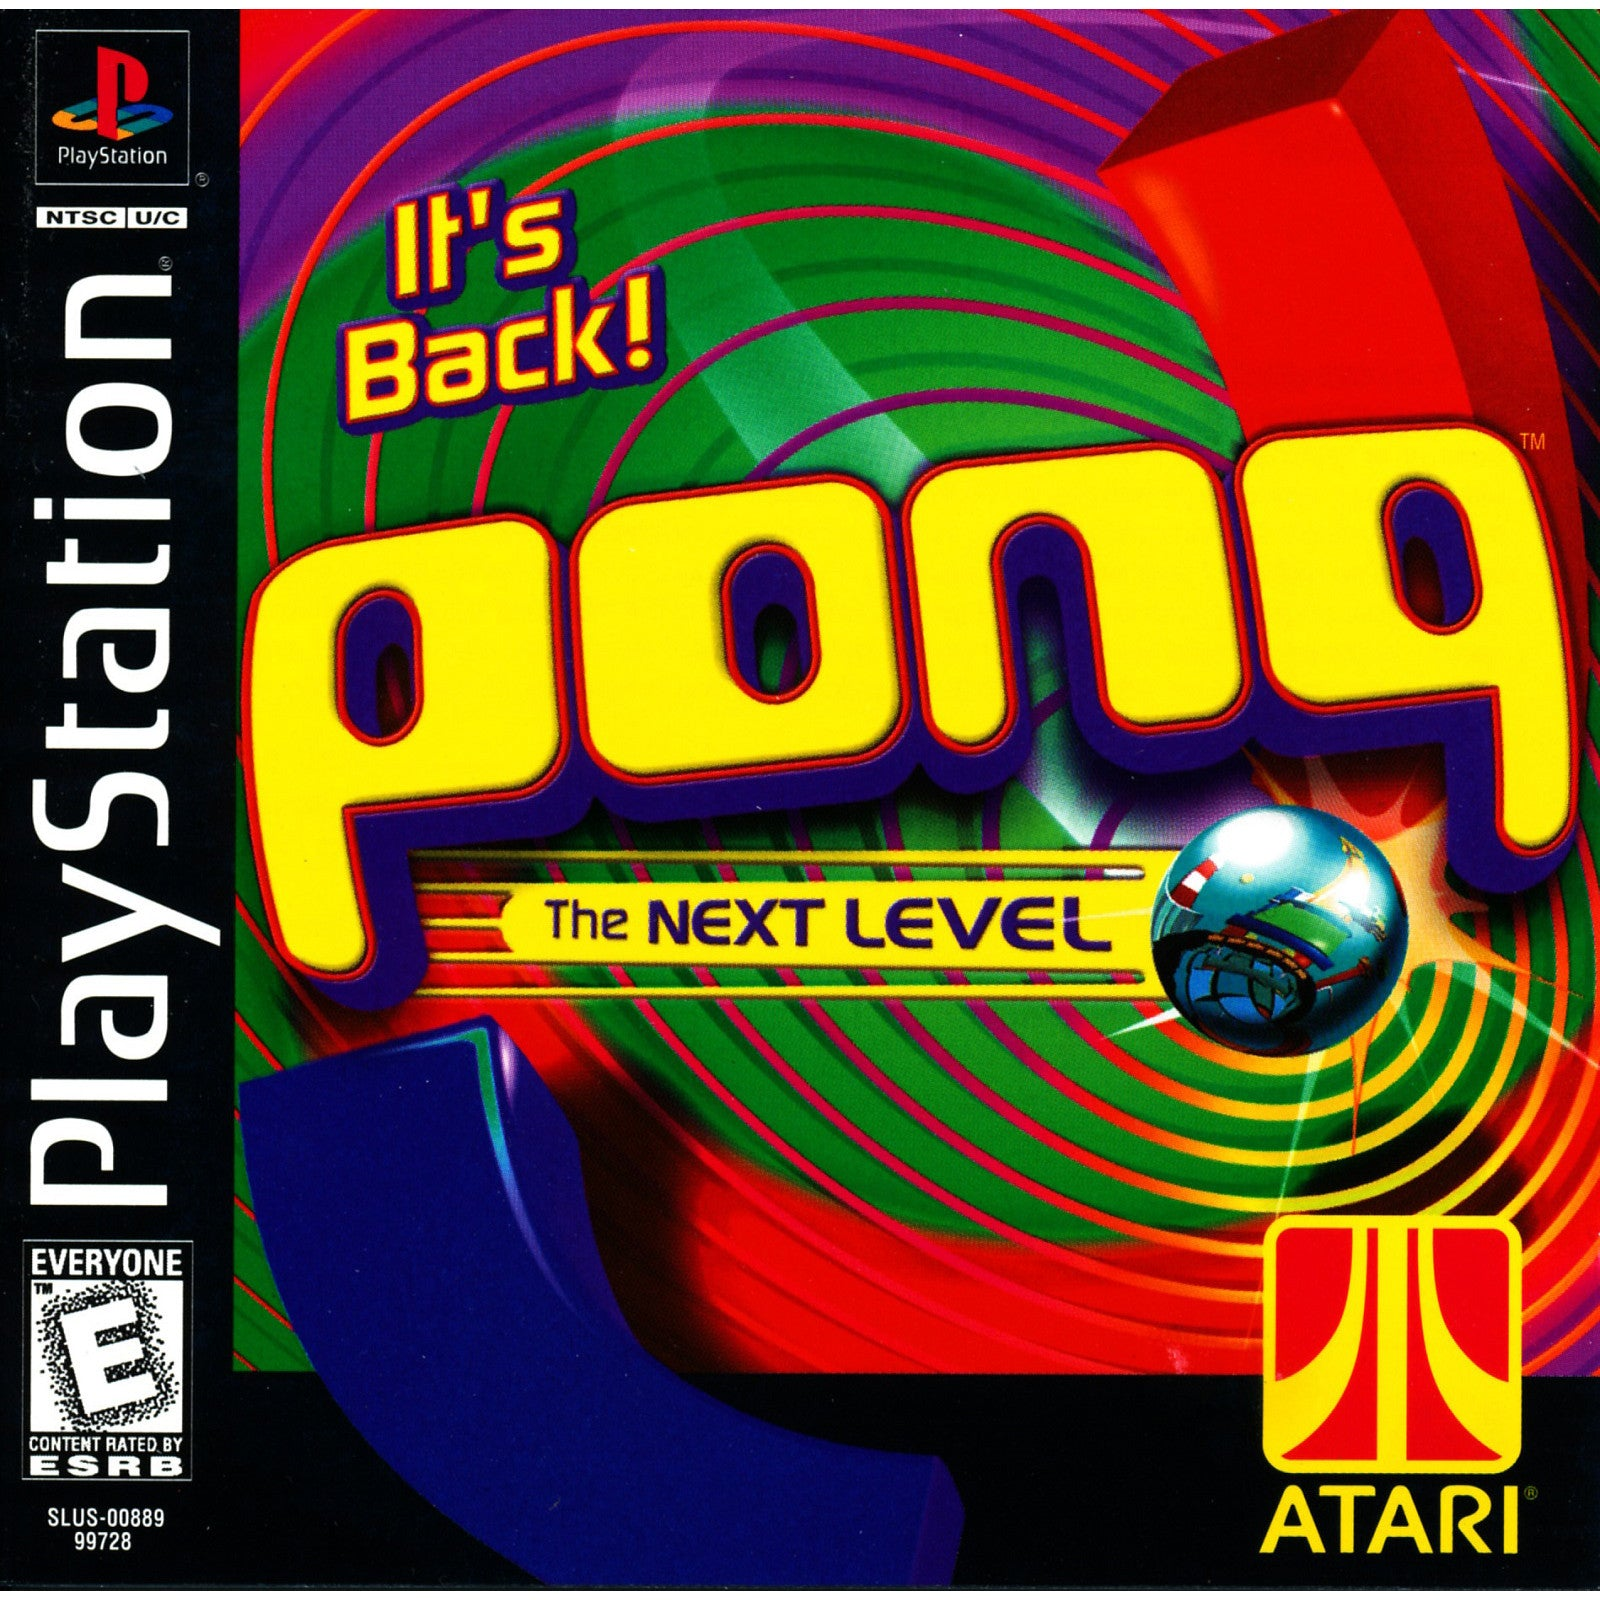 Pong The Next Level for PlayStation 1